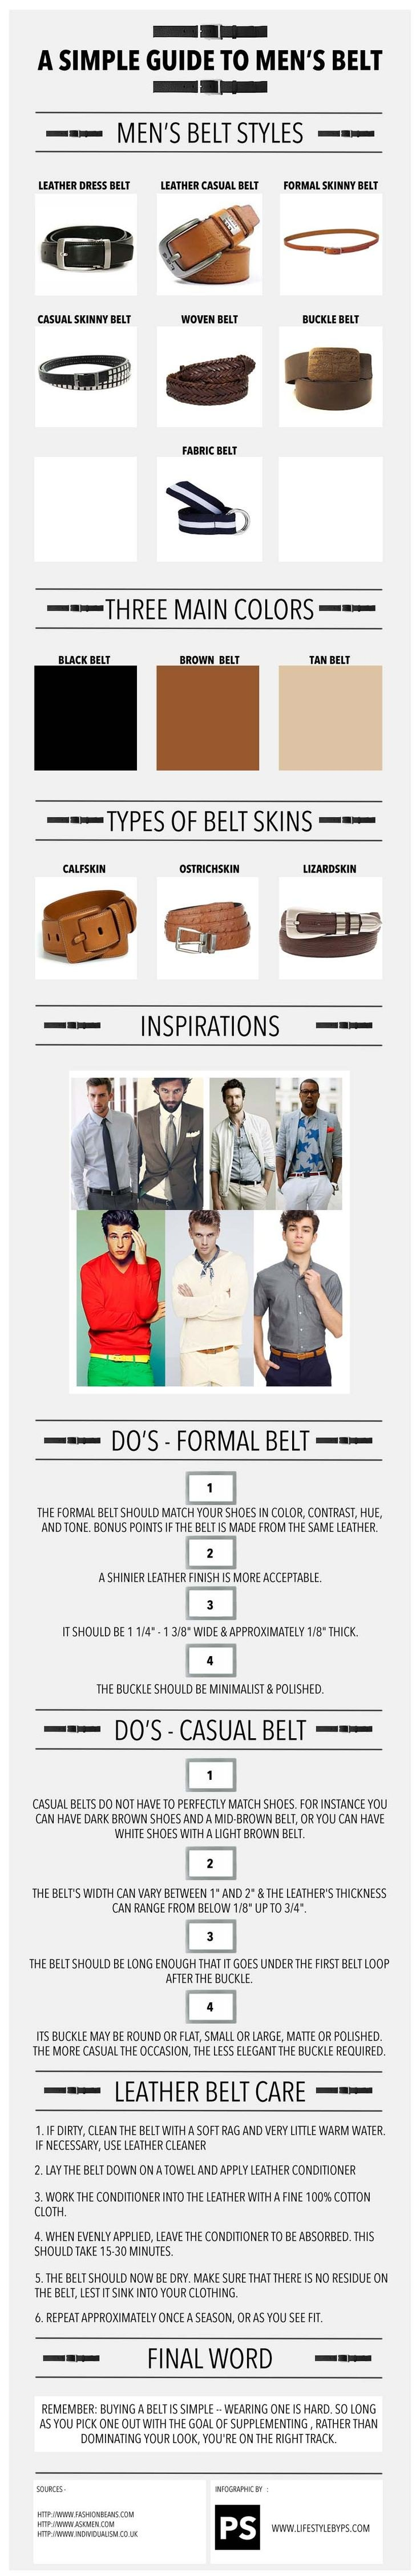 mens-belt-guide, the complete guide to men's belts